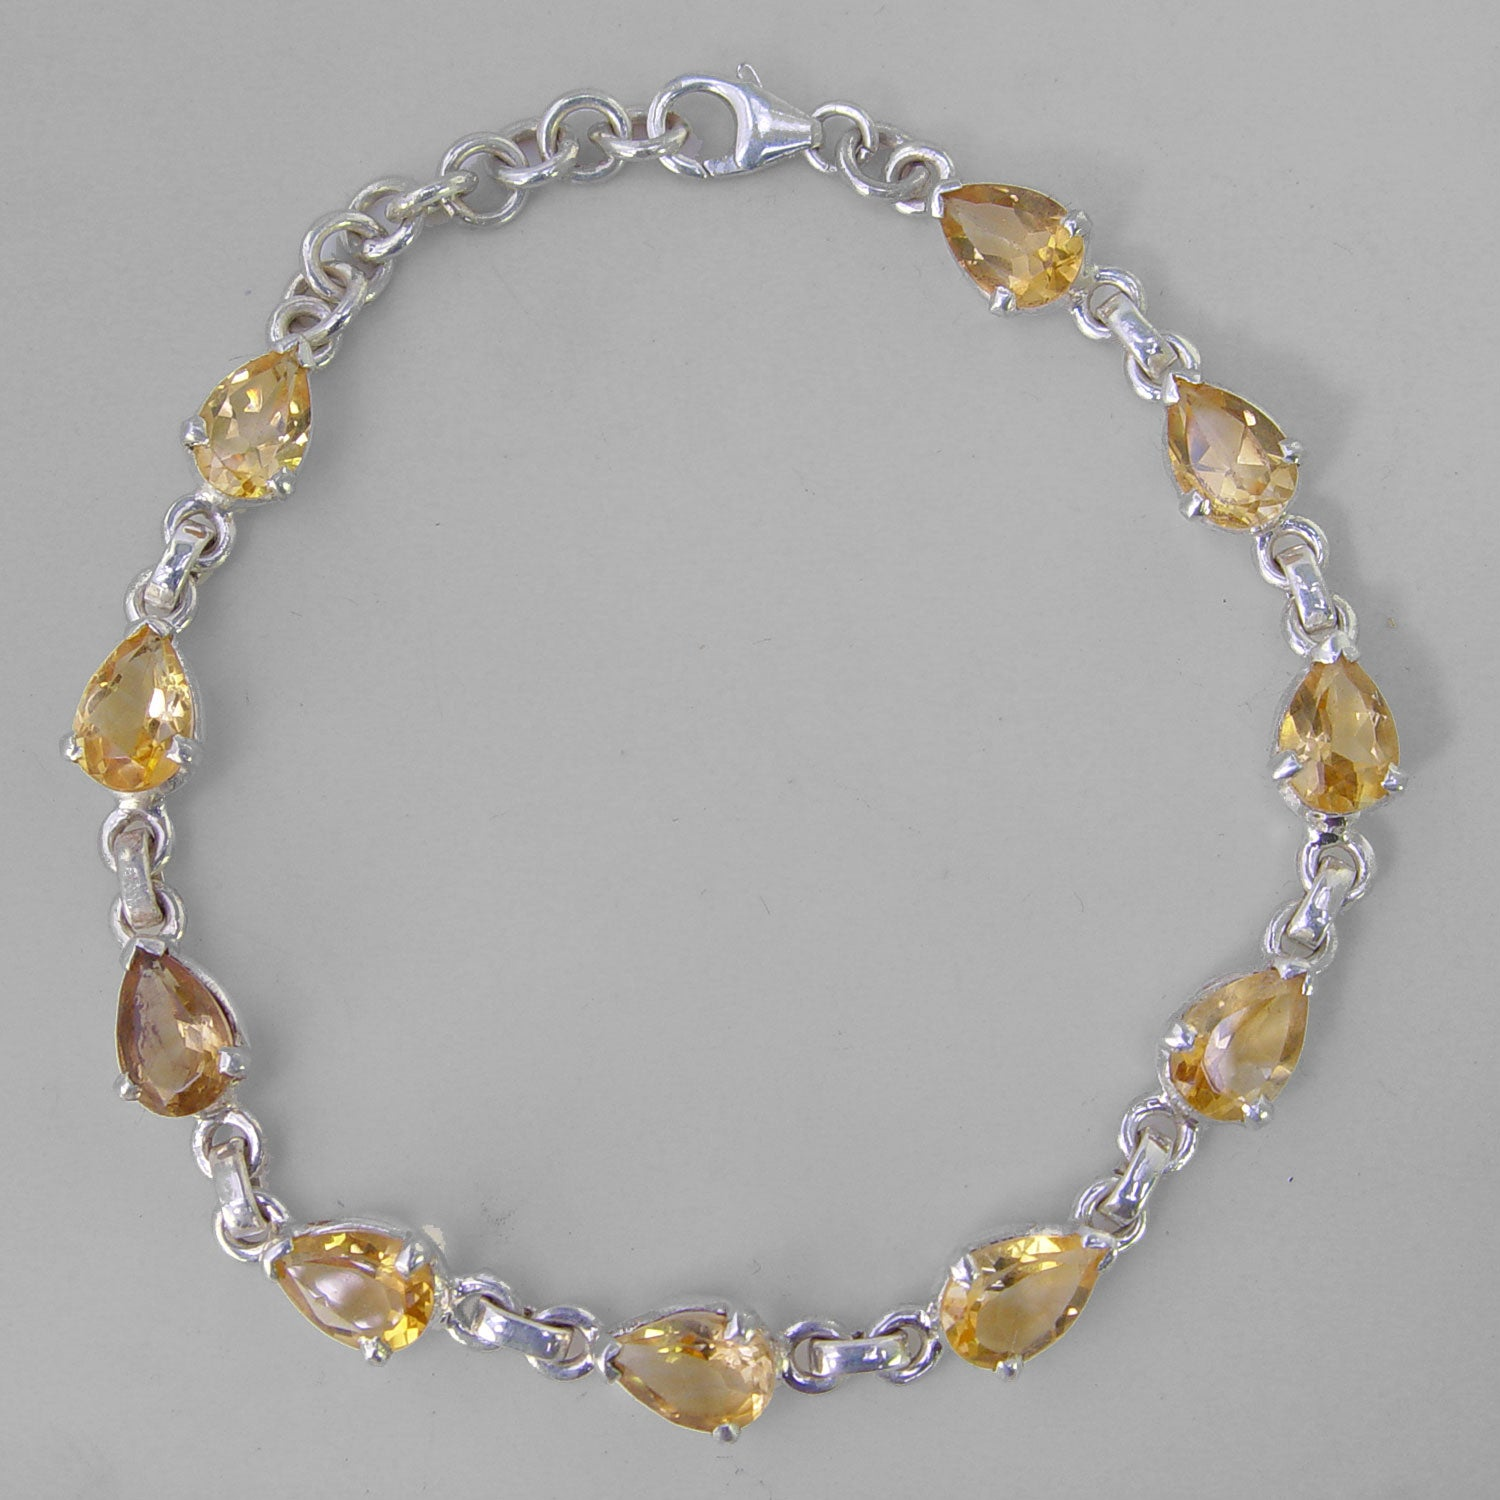 Citrine 10 Faceted Pears Prong Set Sterling Silver Link Bracelet - 7 CTW